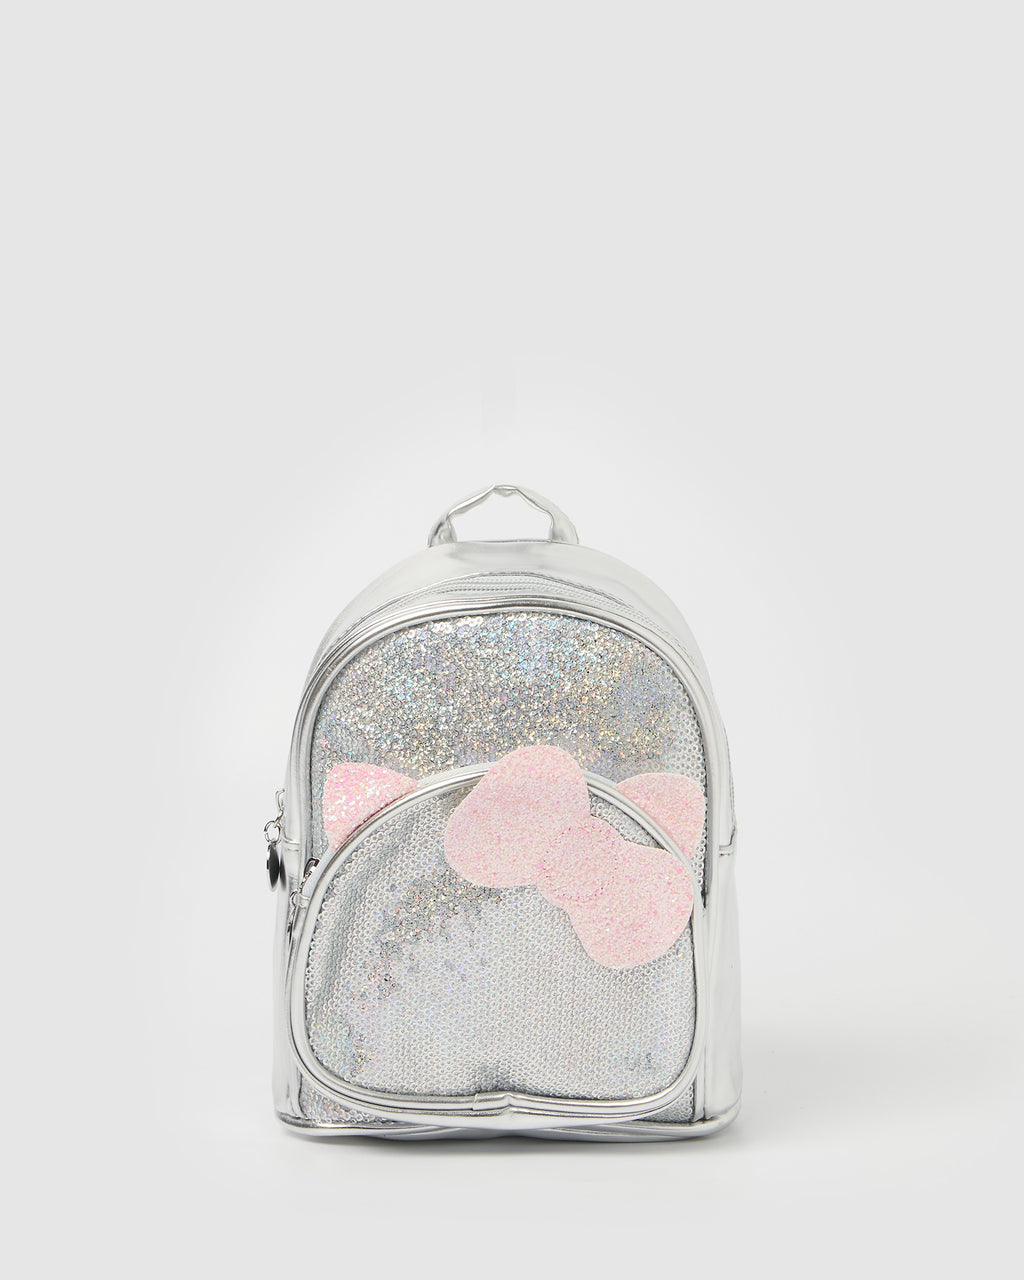 Izoa Kids Matilda Backpack Silver